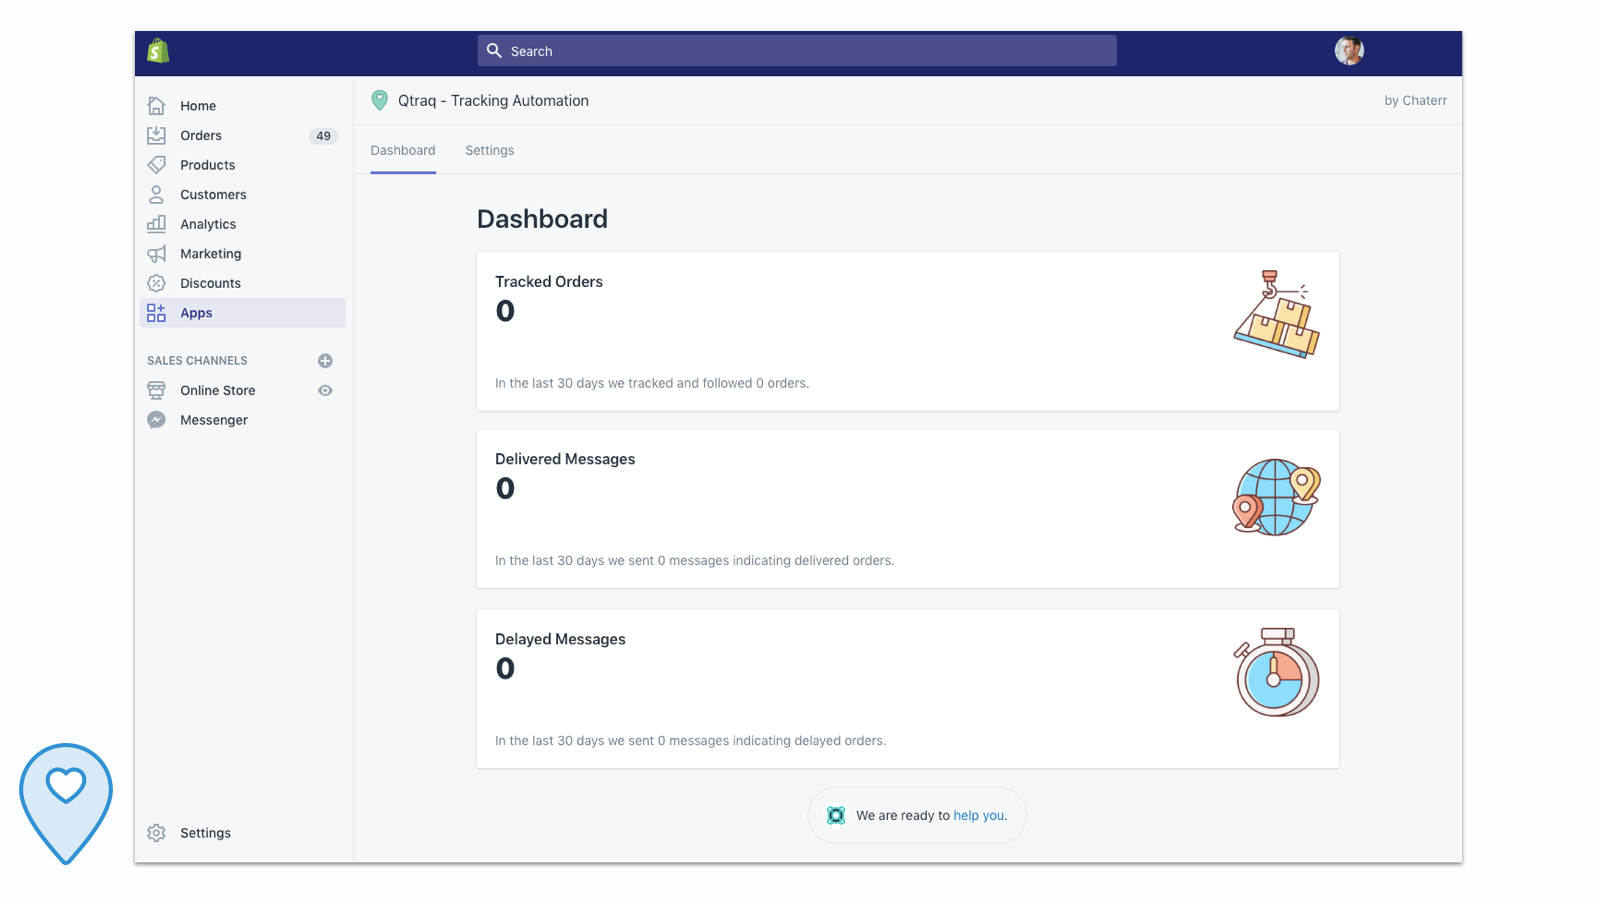 Dashboard - see how many emails we sent